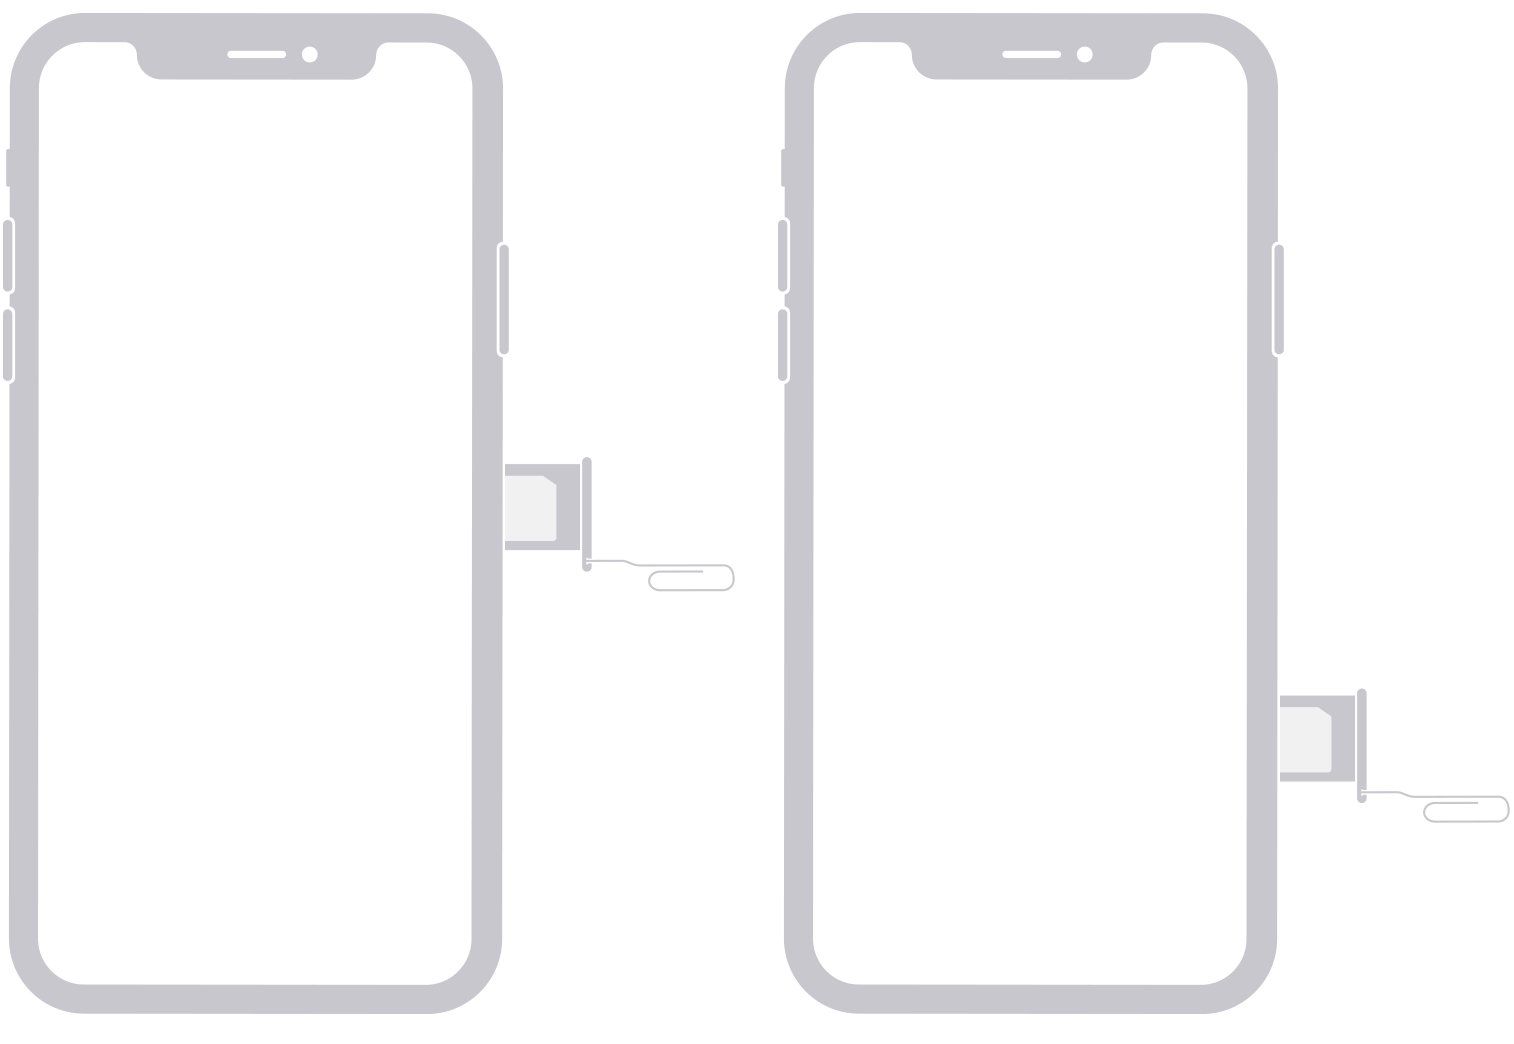 iphone x xr remove sim card tech spec diagram